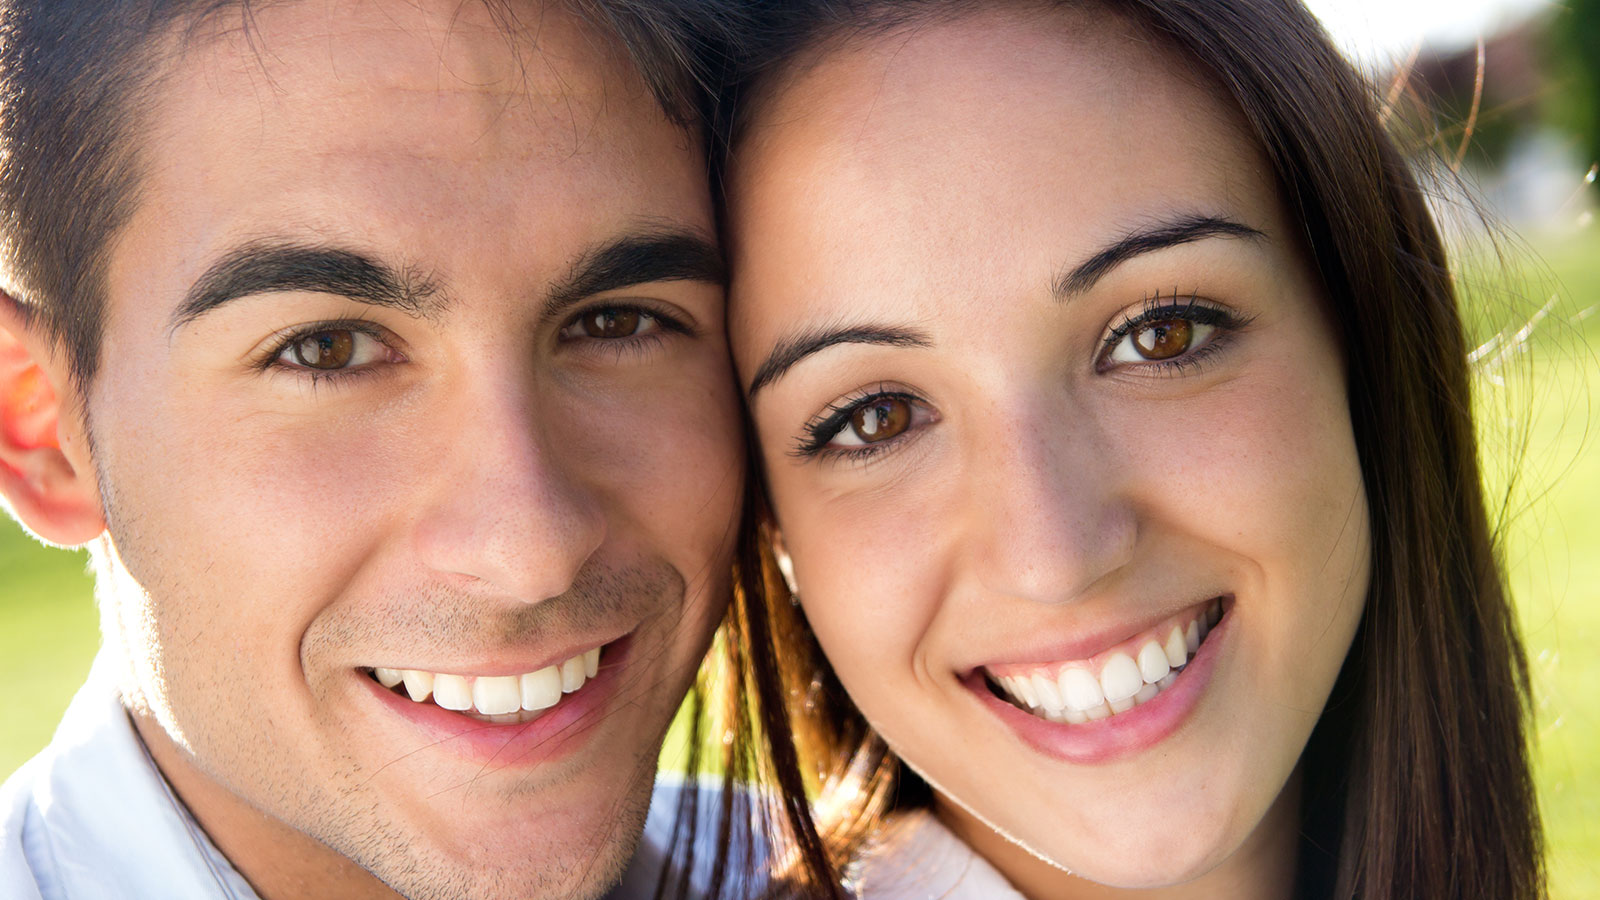 closeup view of a girl and a boy who are smiling